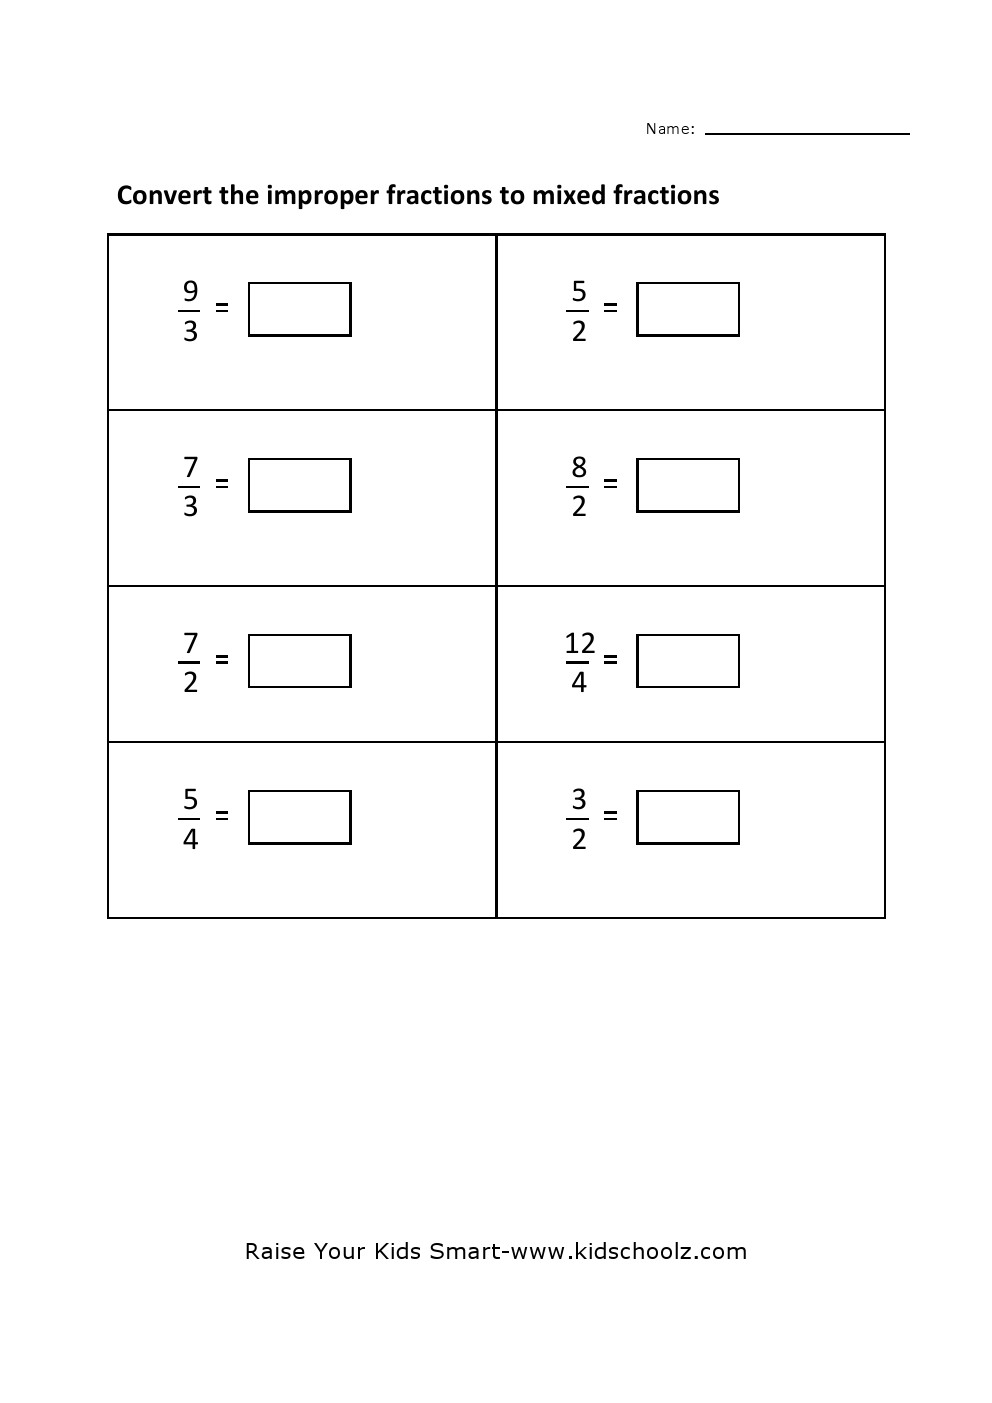 Grade 4 Convert Improper Fraction To Mixed Fraction Worksheet 3 – Mixed Fractions to Improper Fractions Worksheets